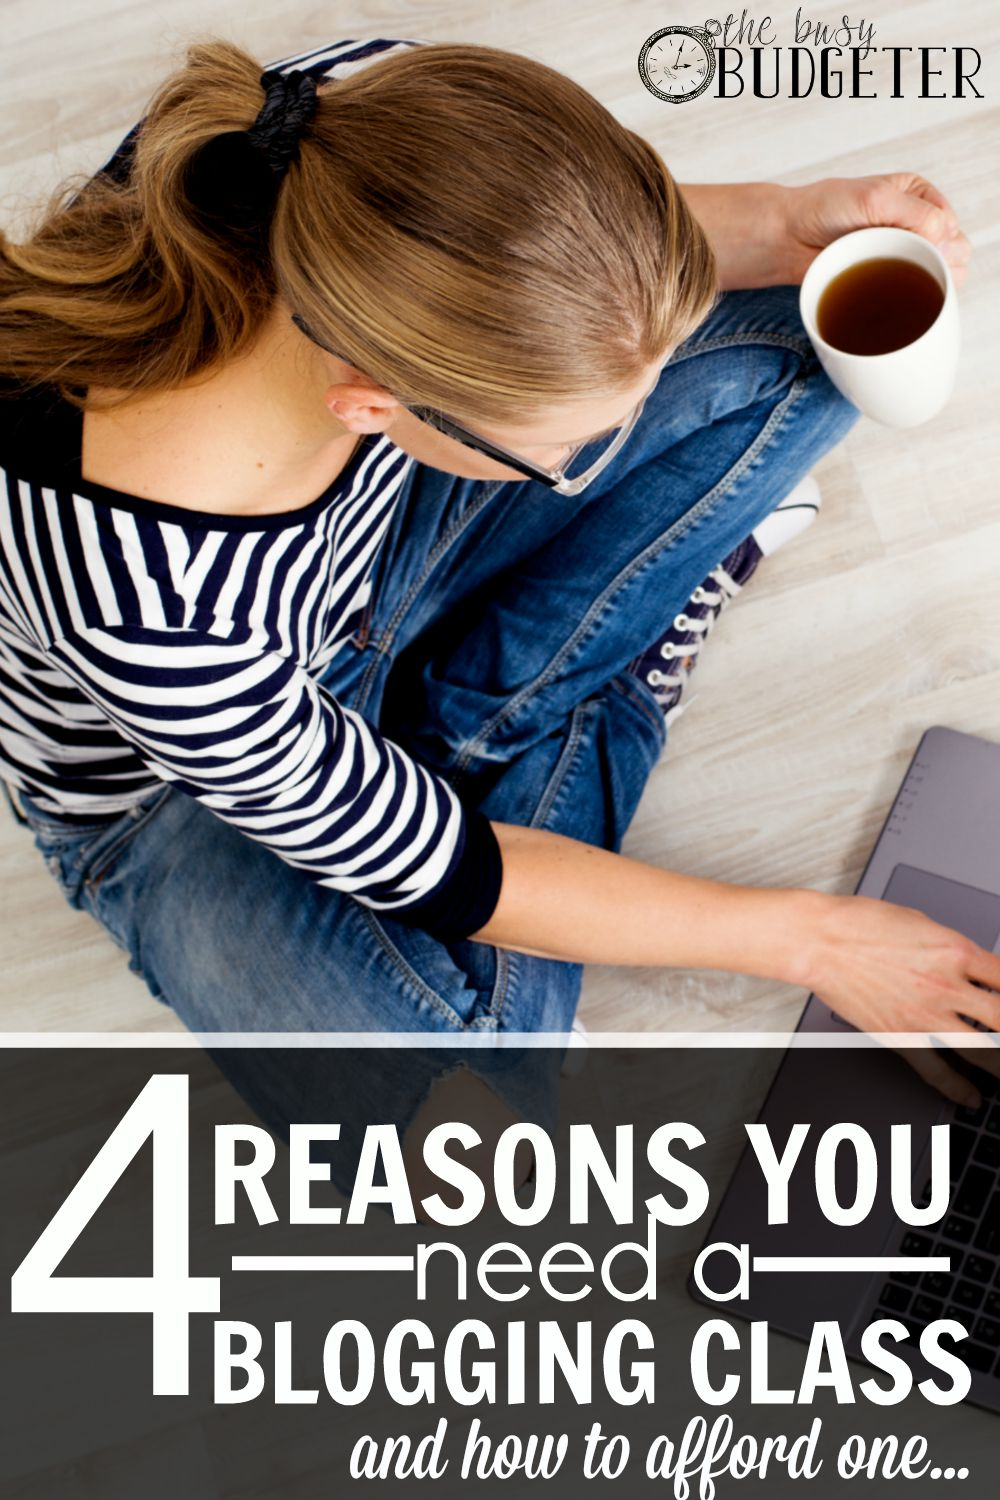 4 Reasons You Need a Blogging Class